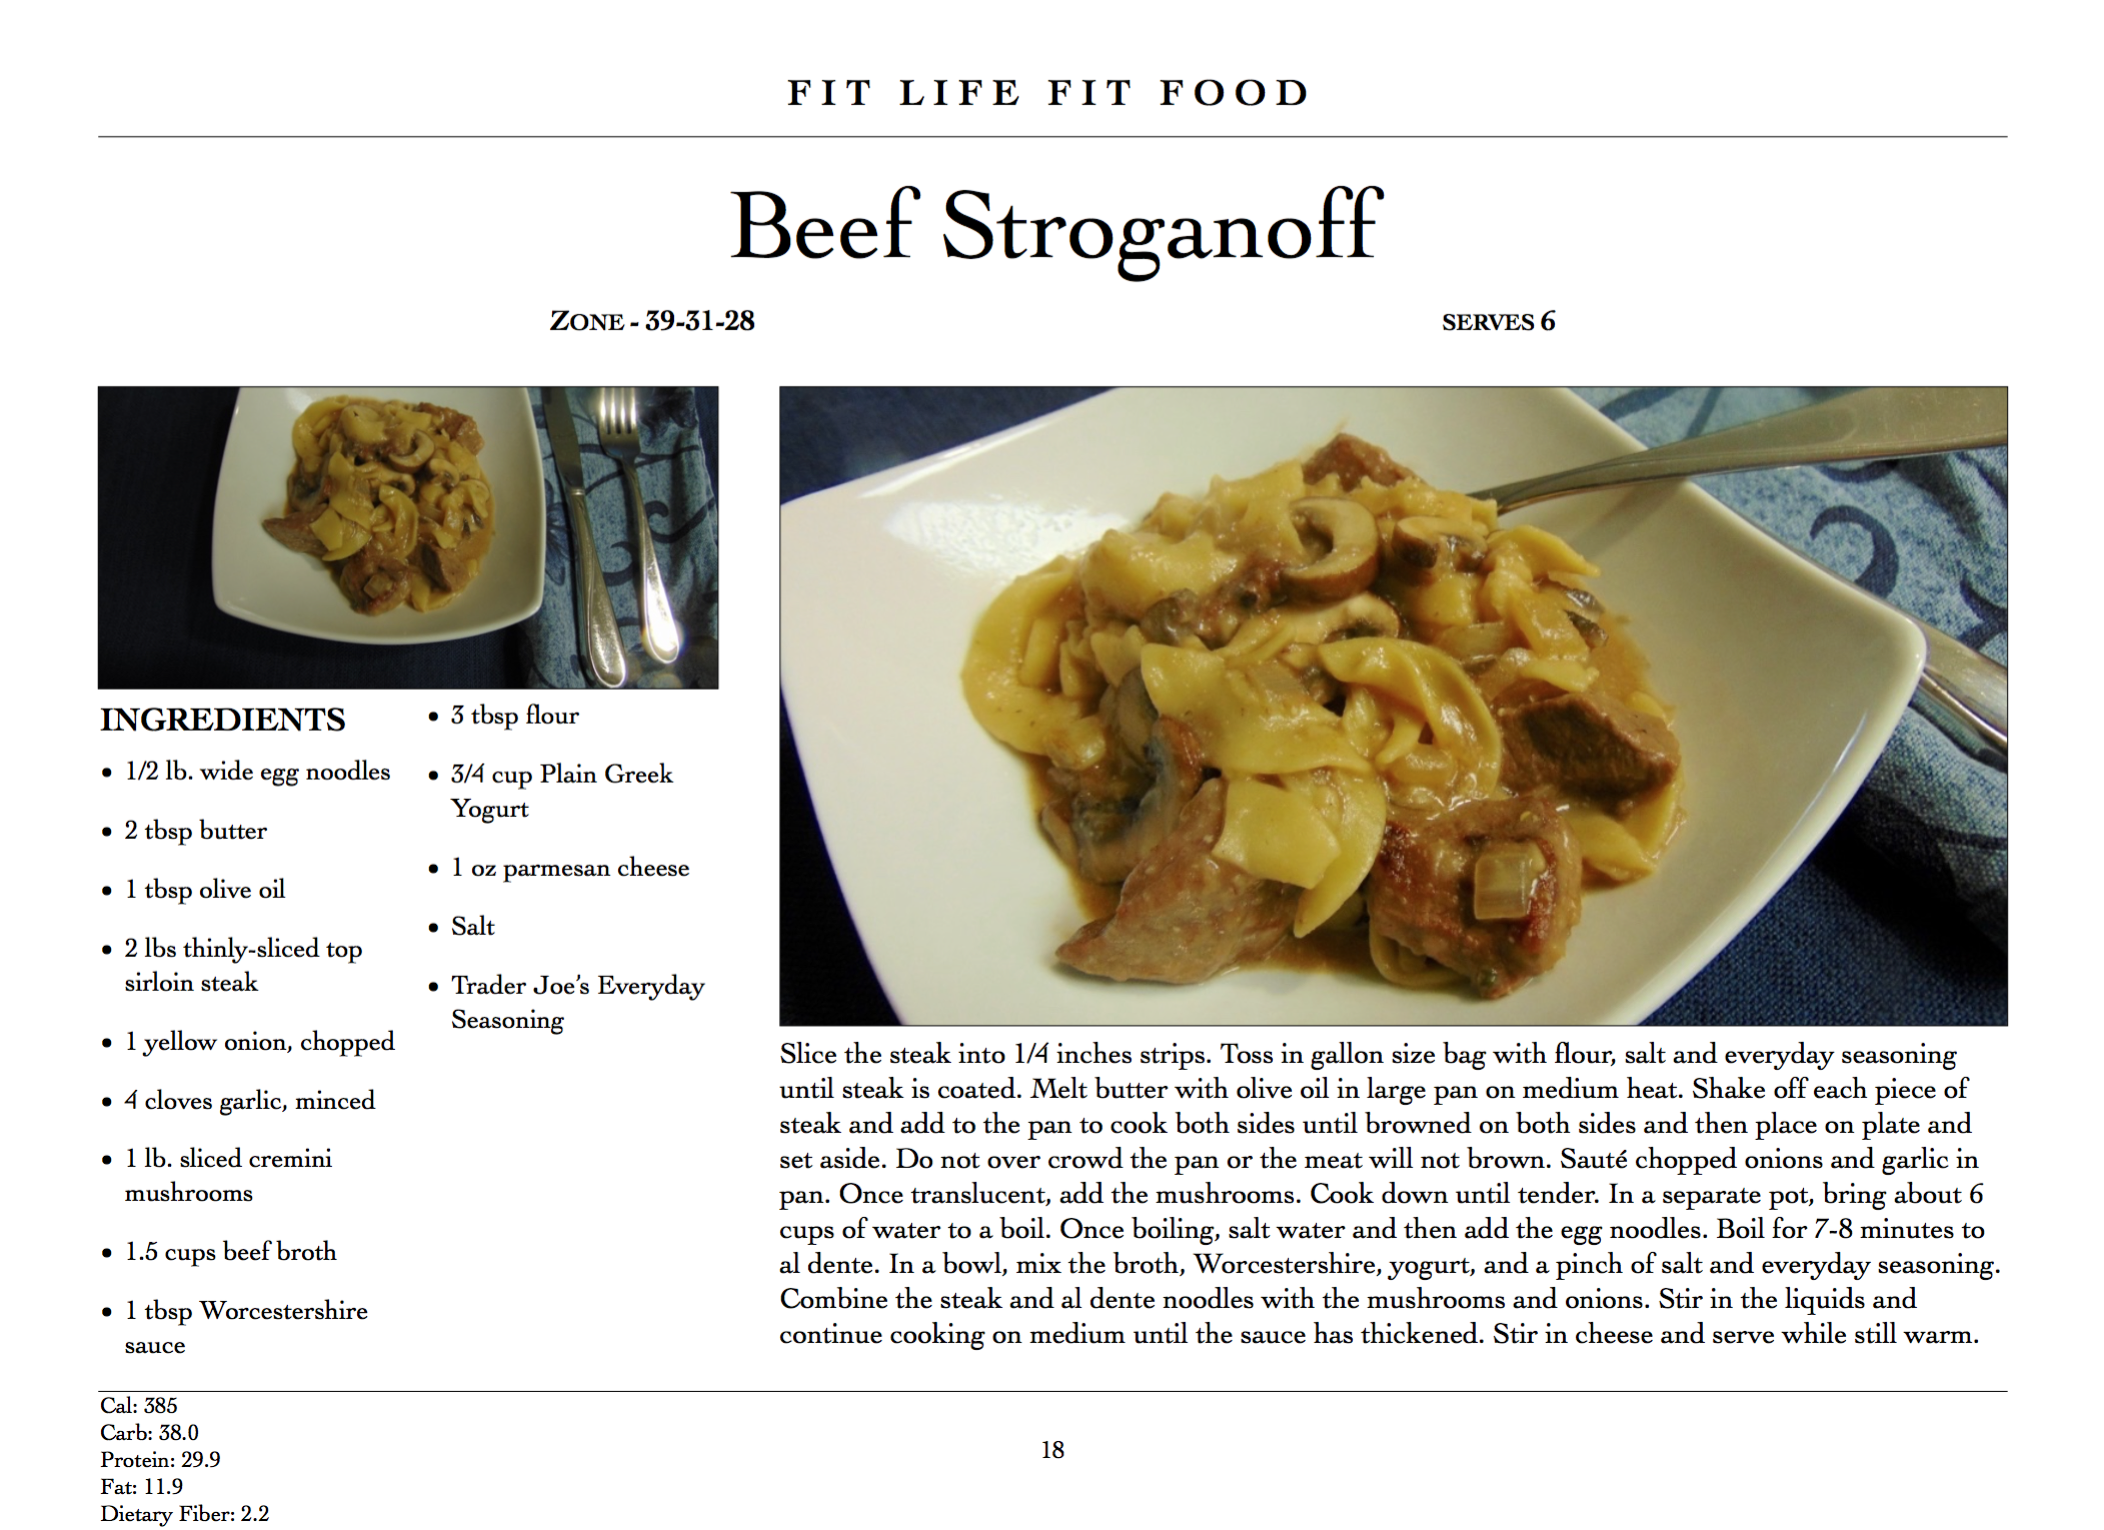 5 day meal plan example page 2 fit life fit food recipes pinterest 5 day meal plan example page 2 forumfinder Image collections